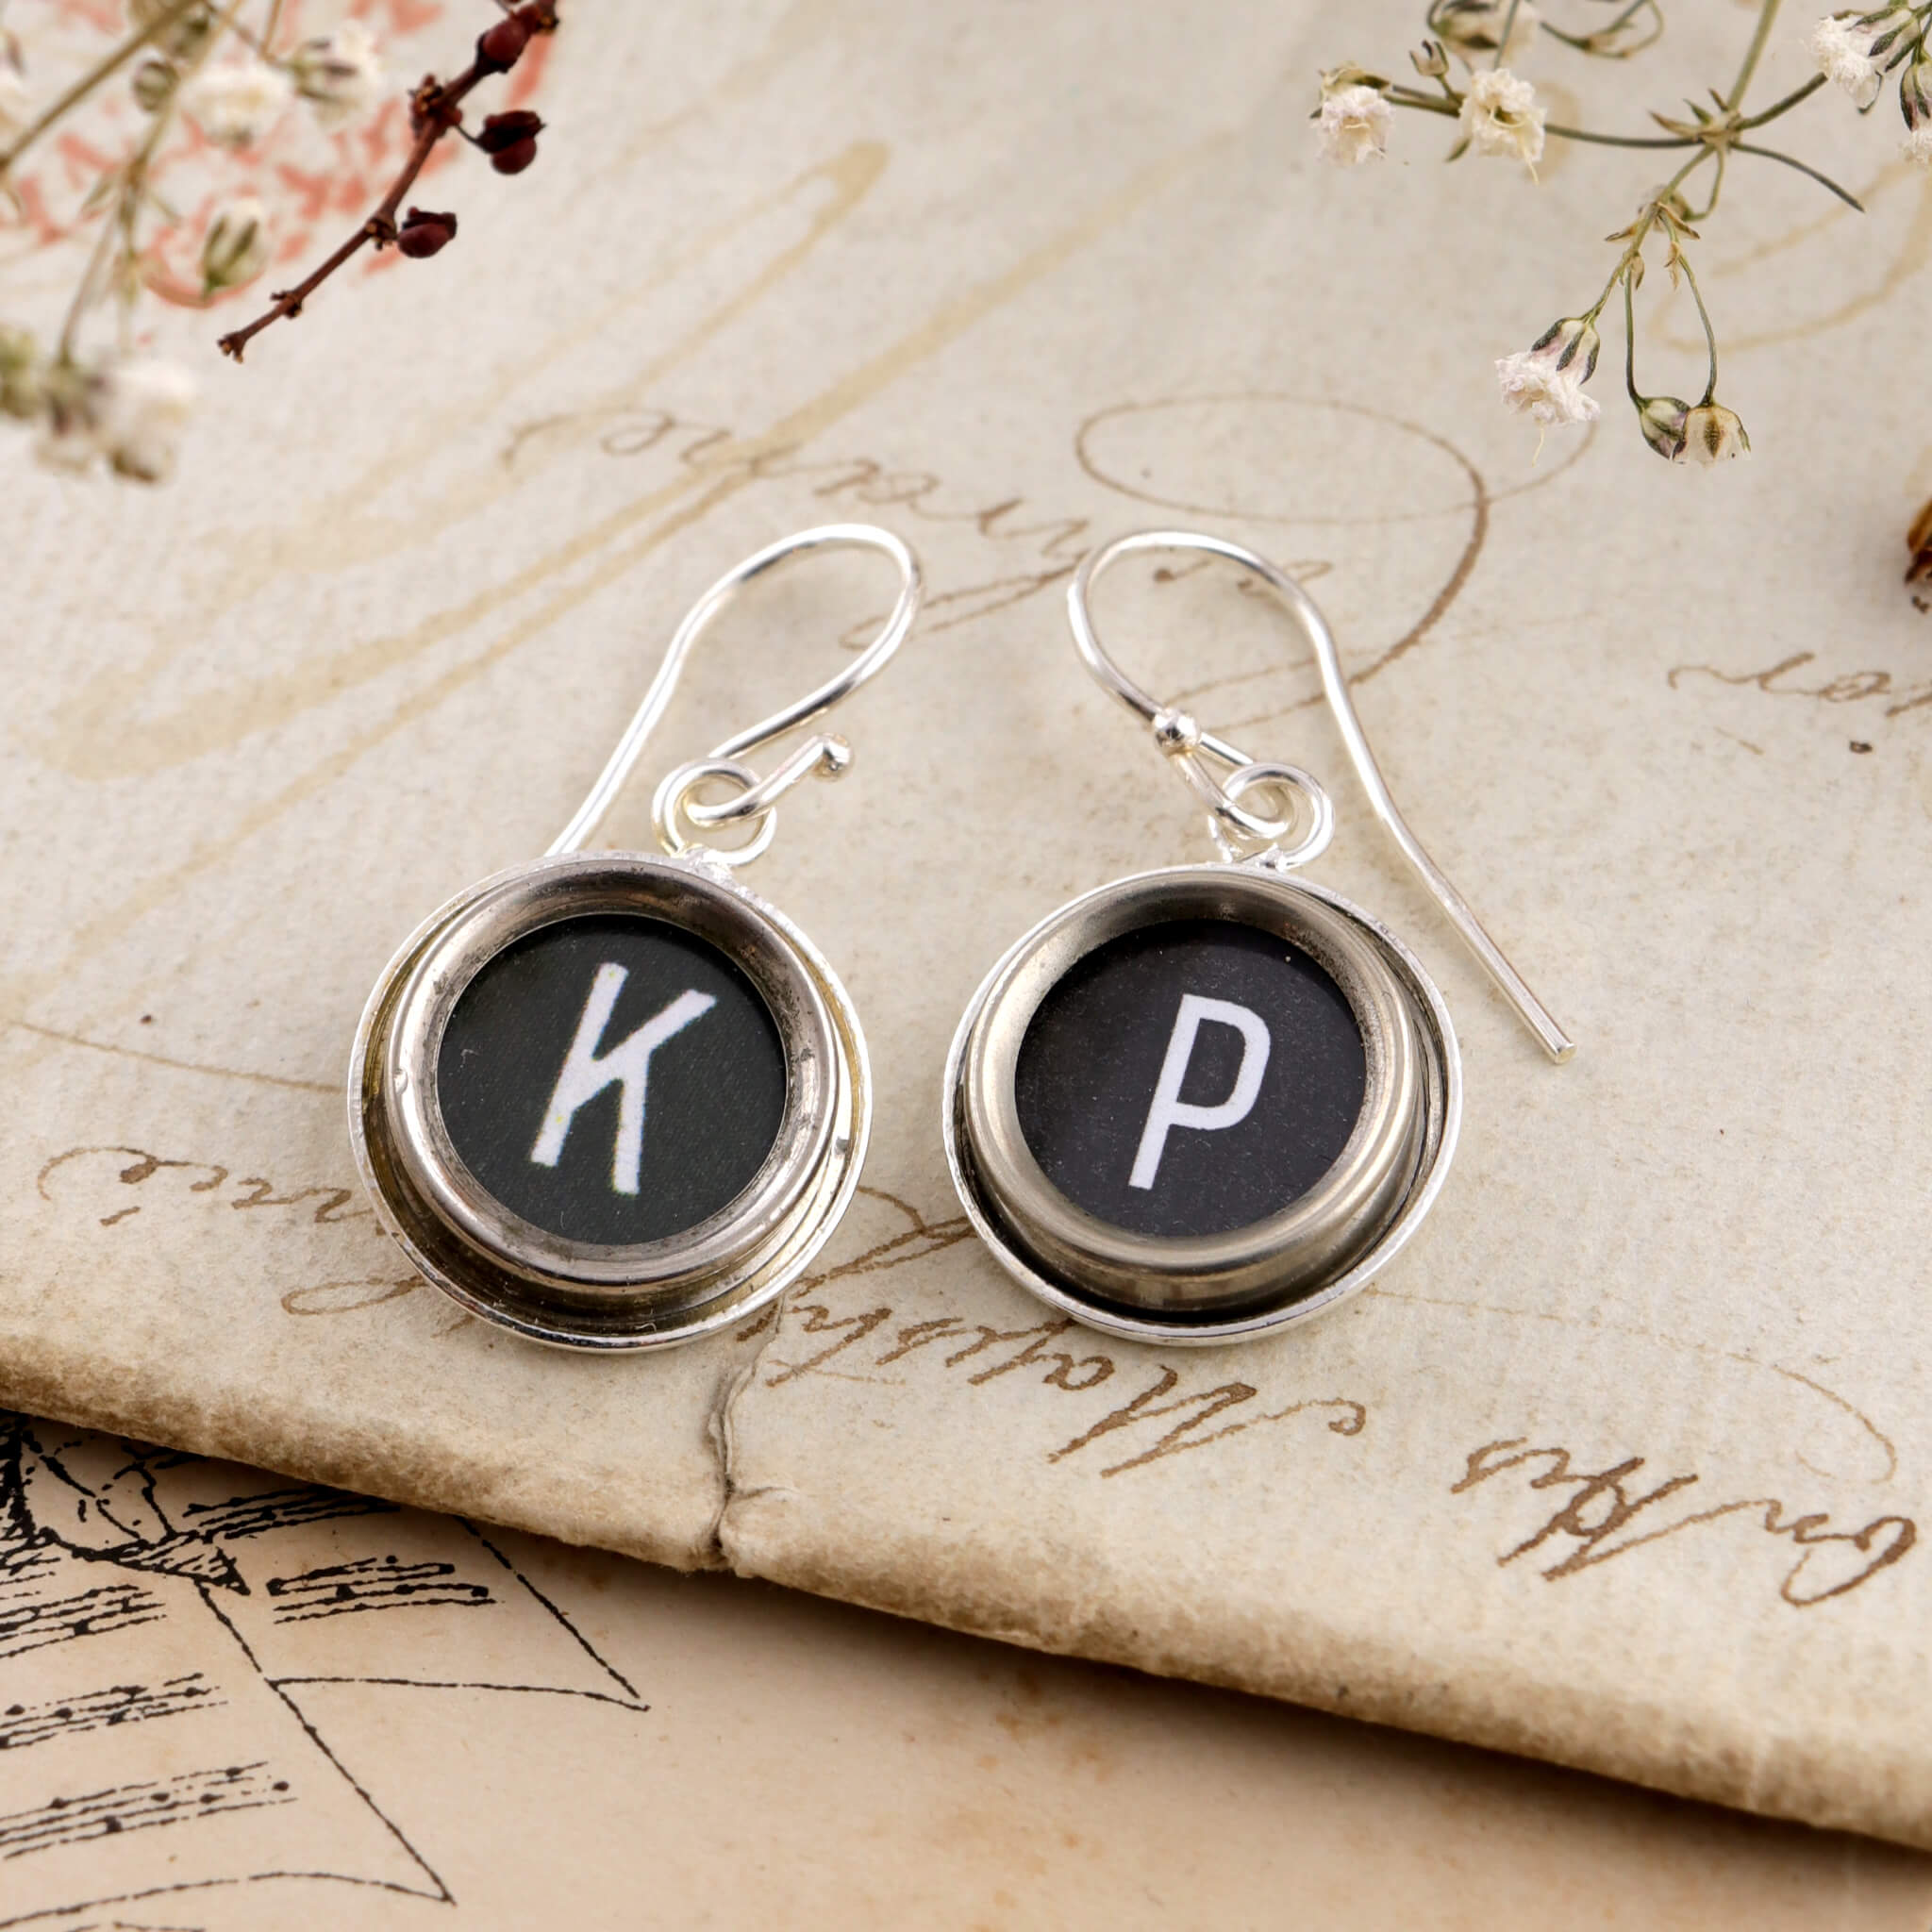 Black initial earrings K and P made of old typewriter keys